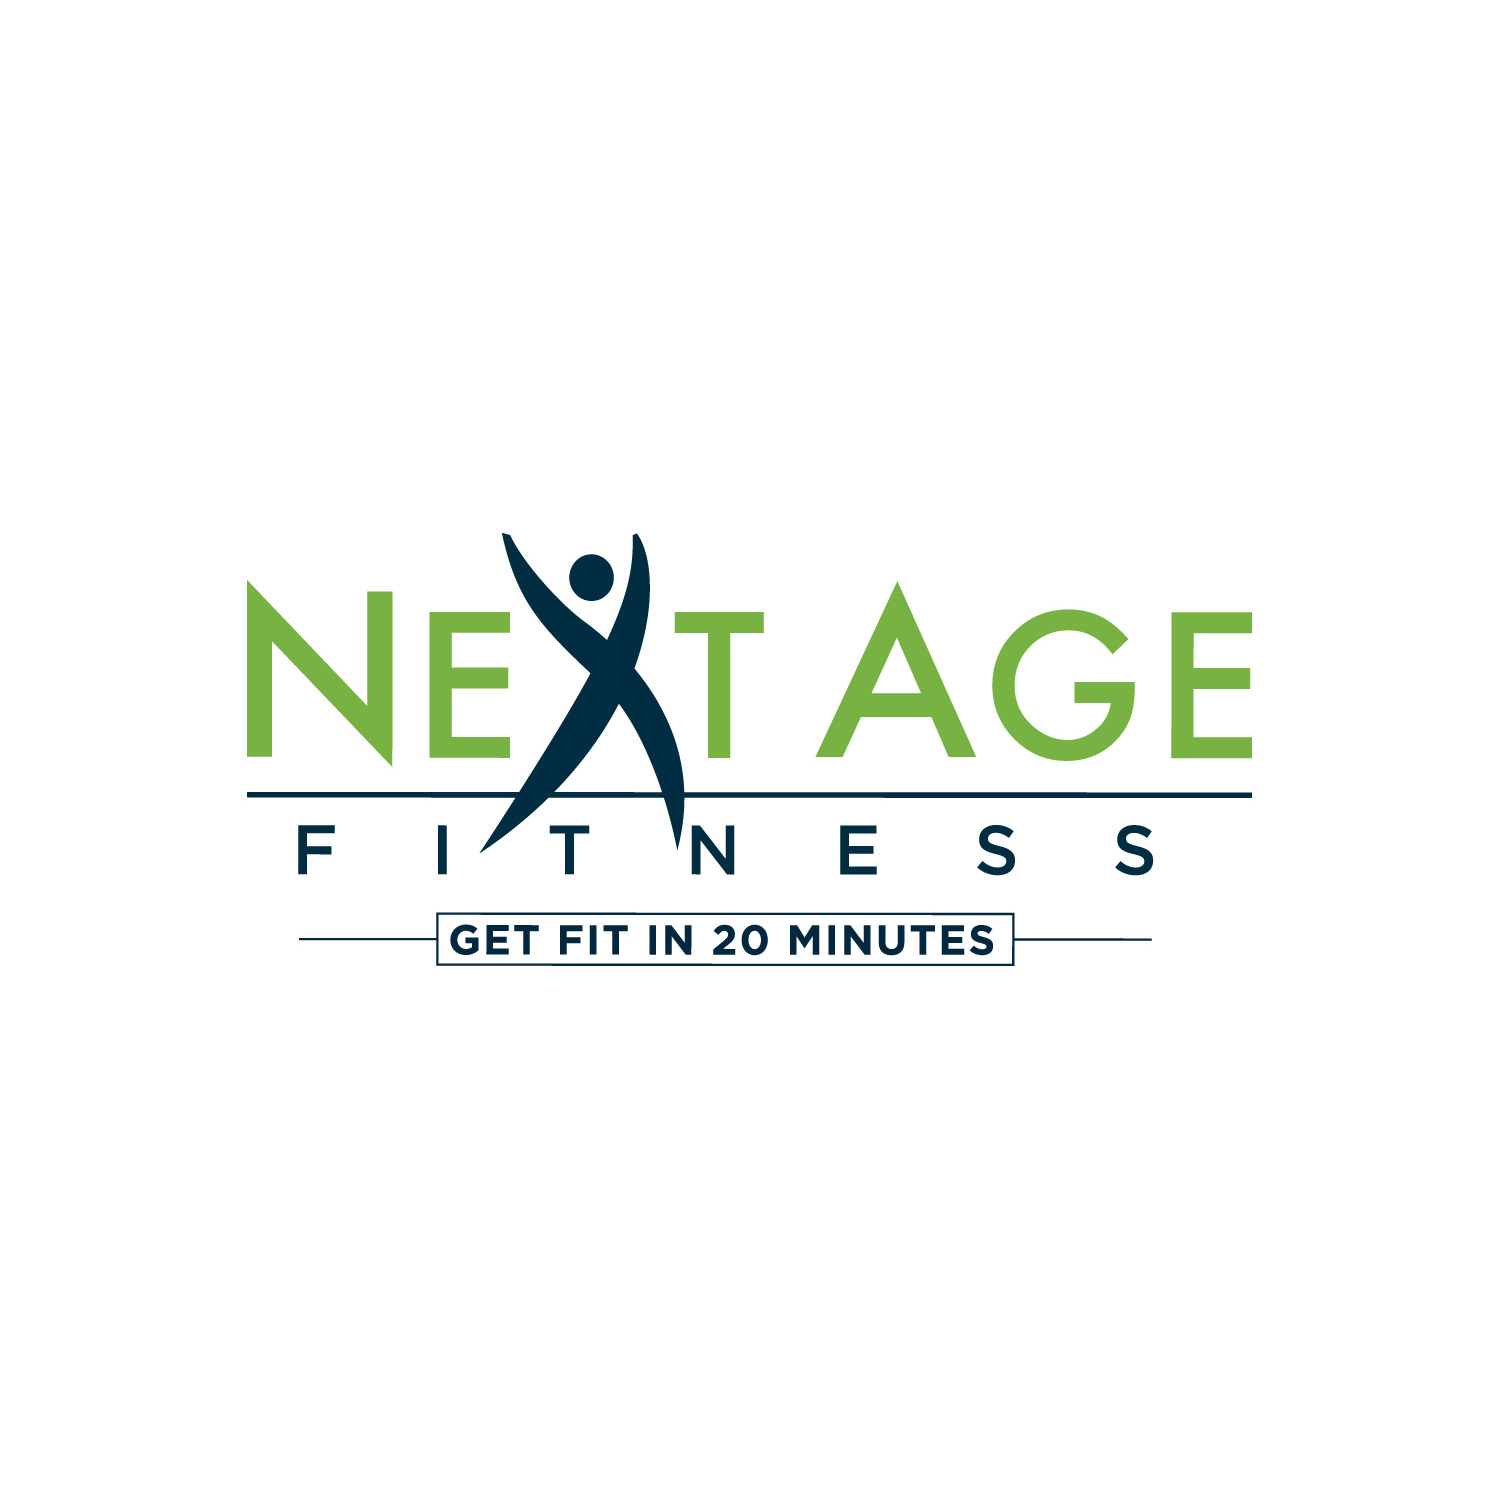 Next Age Fitness Coupons Near Me In Atlanta 8coupons